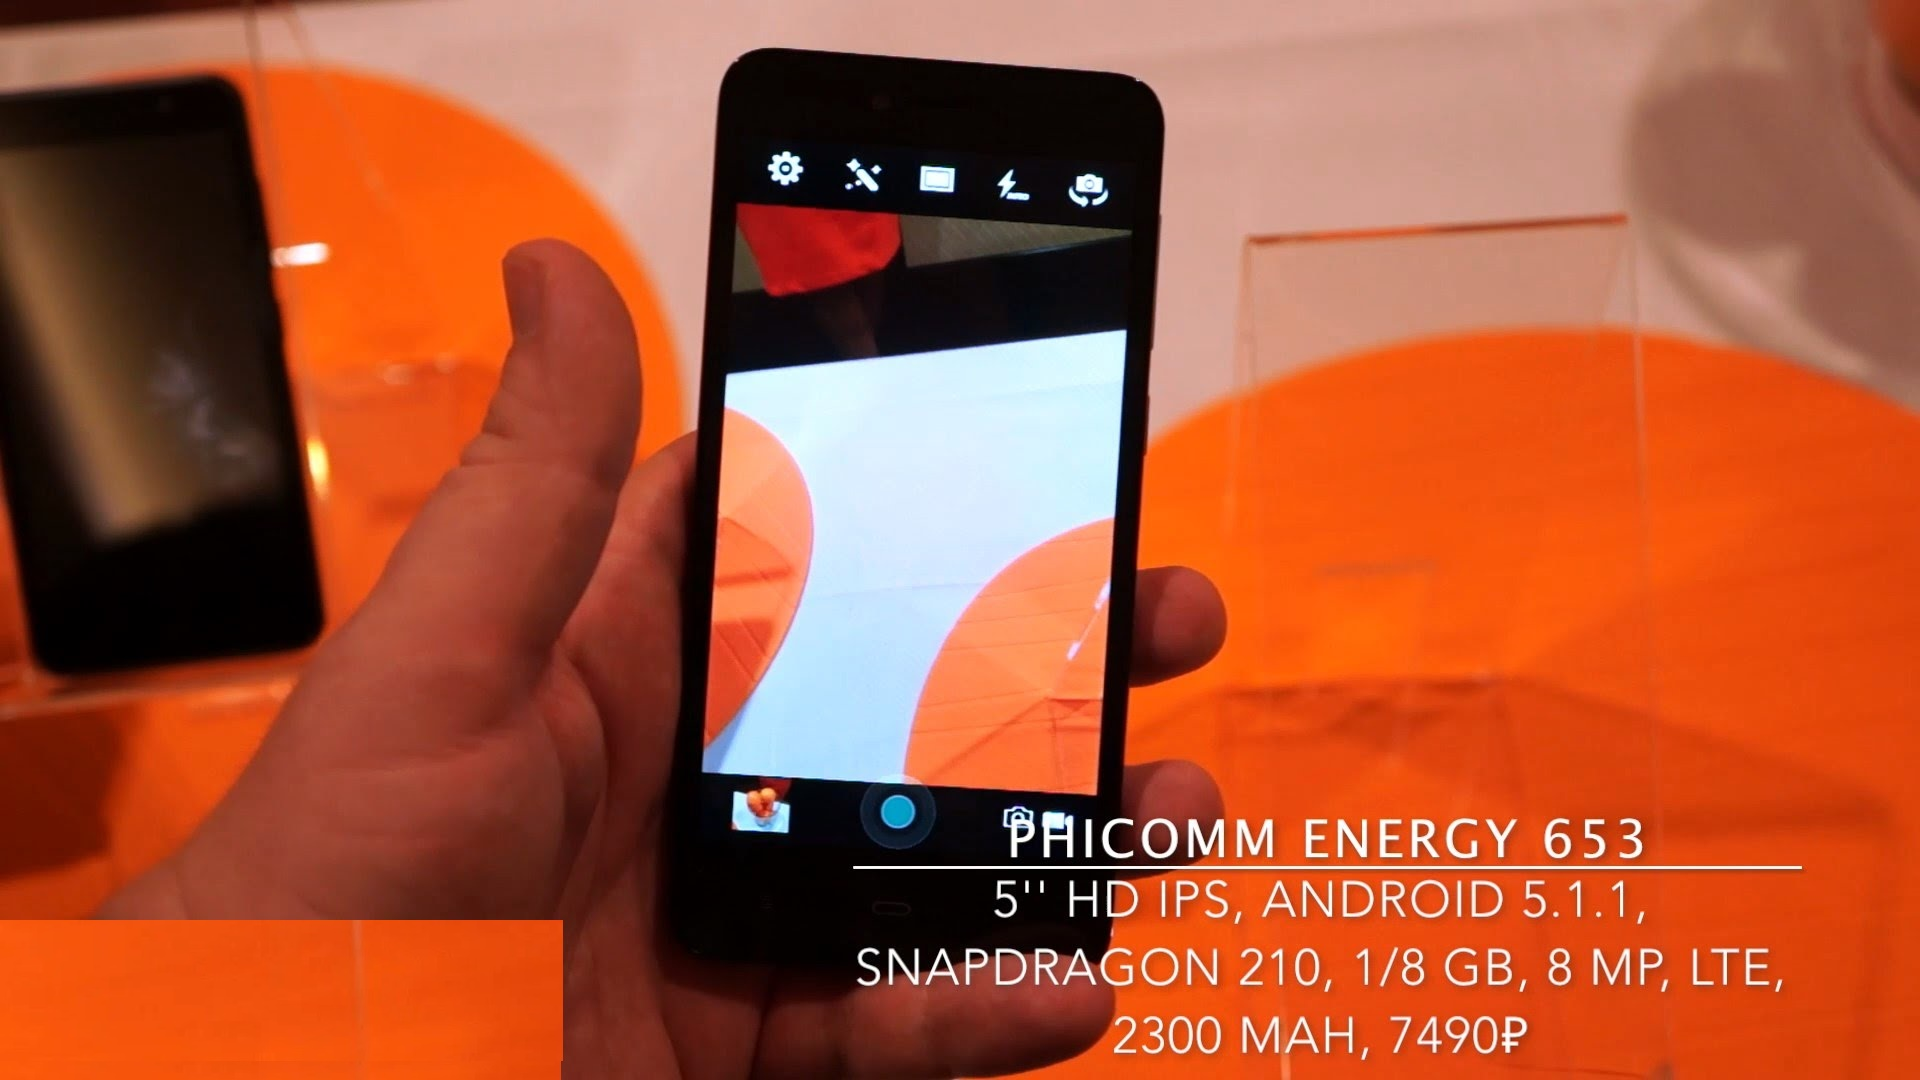 Phicomm Clue 630 Smartphone Launch Dates Full Specs Features Price